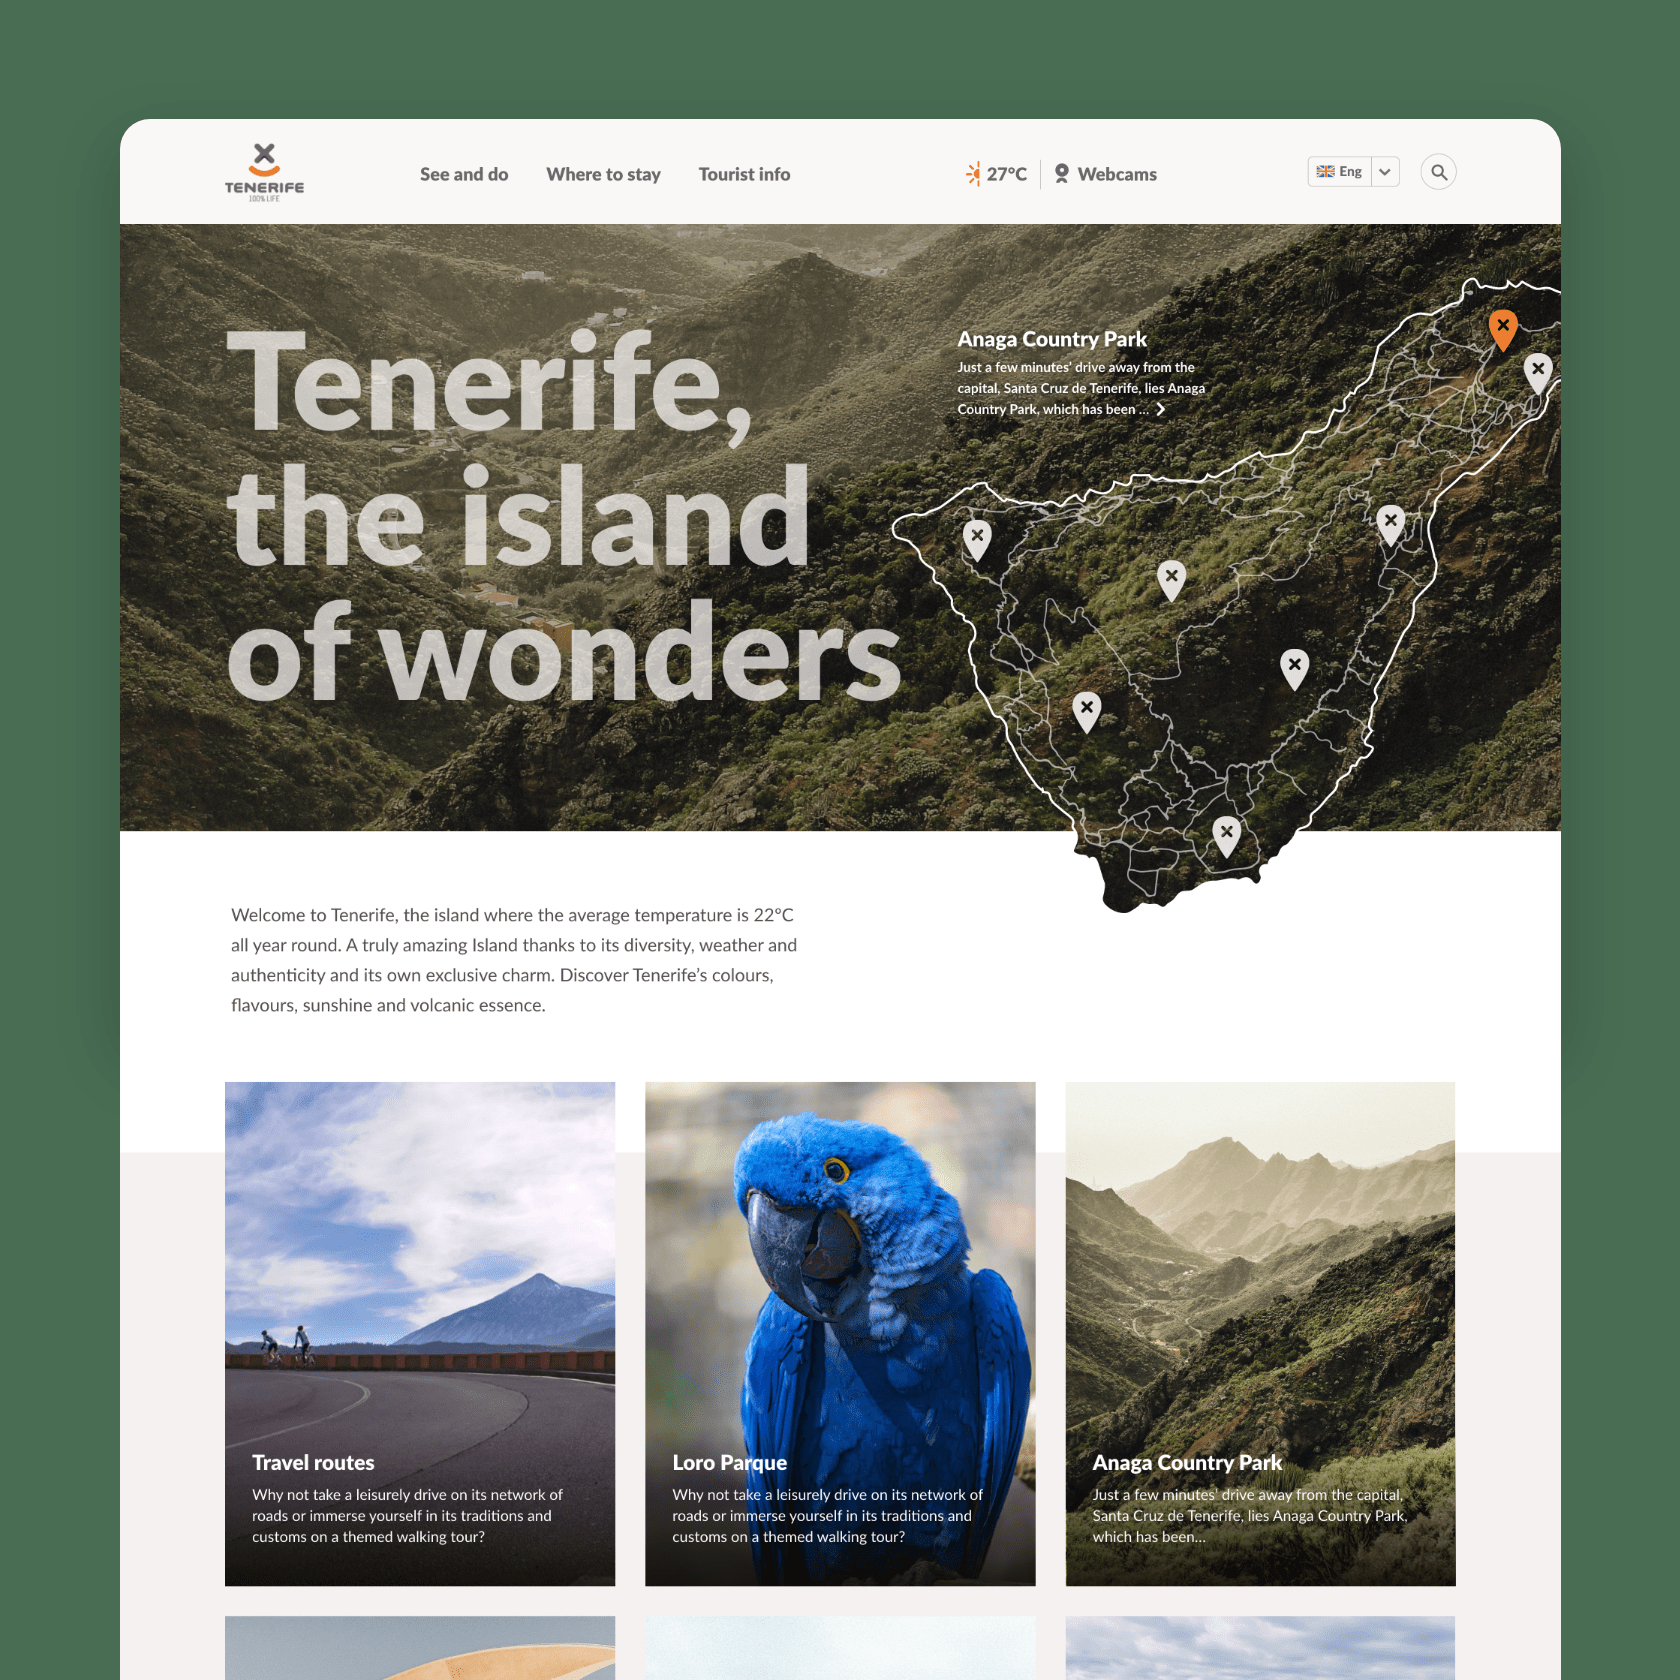 Tenerife tourism website